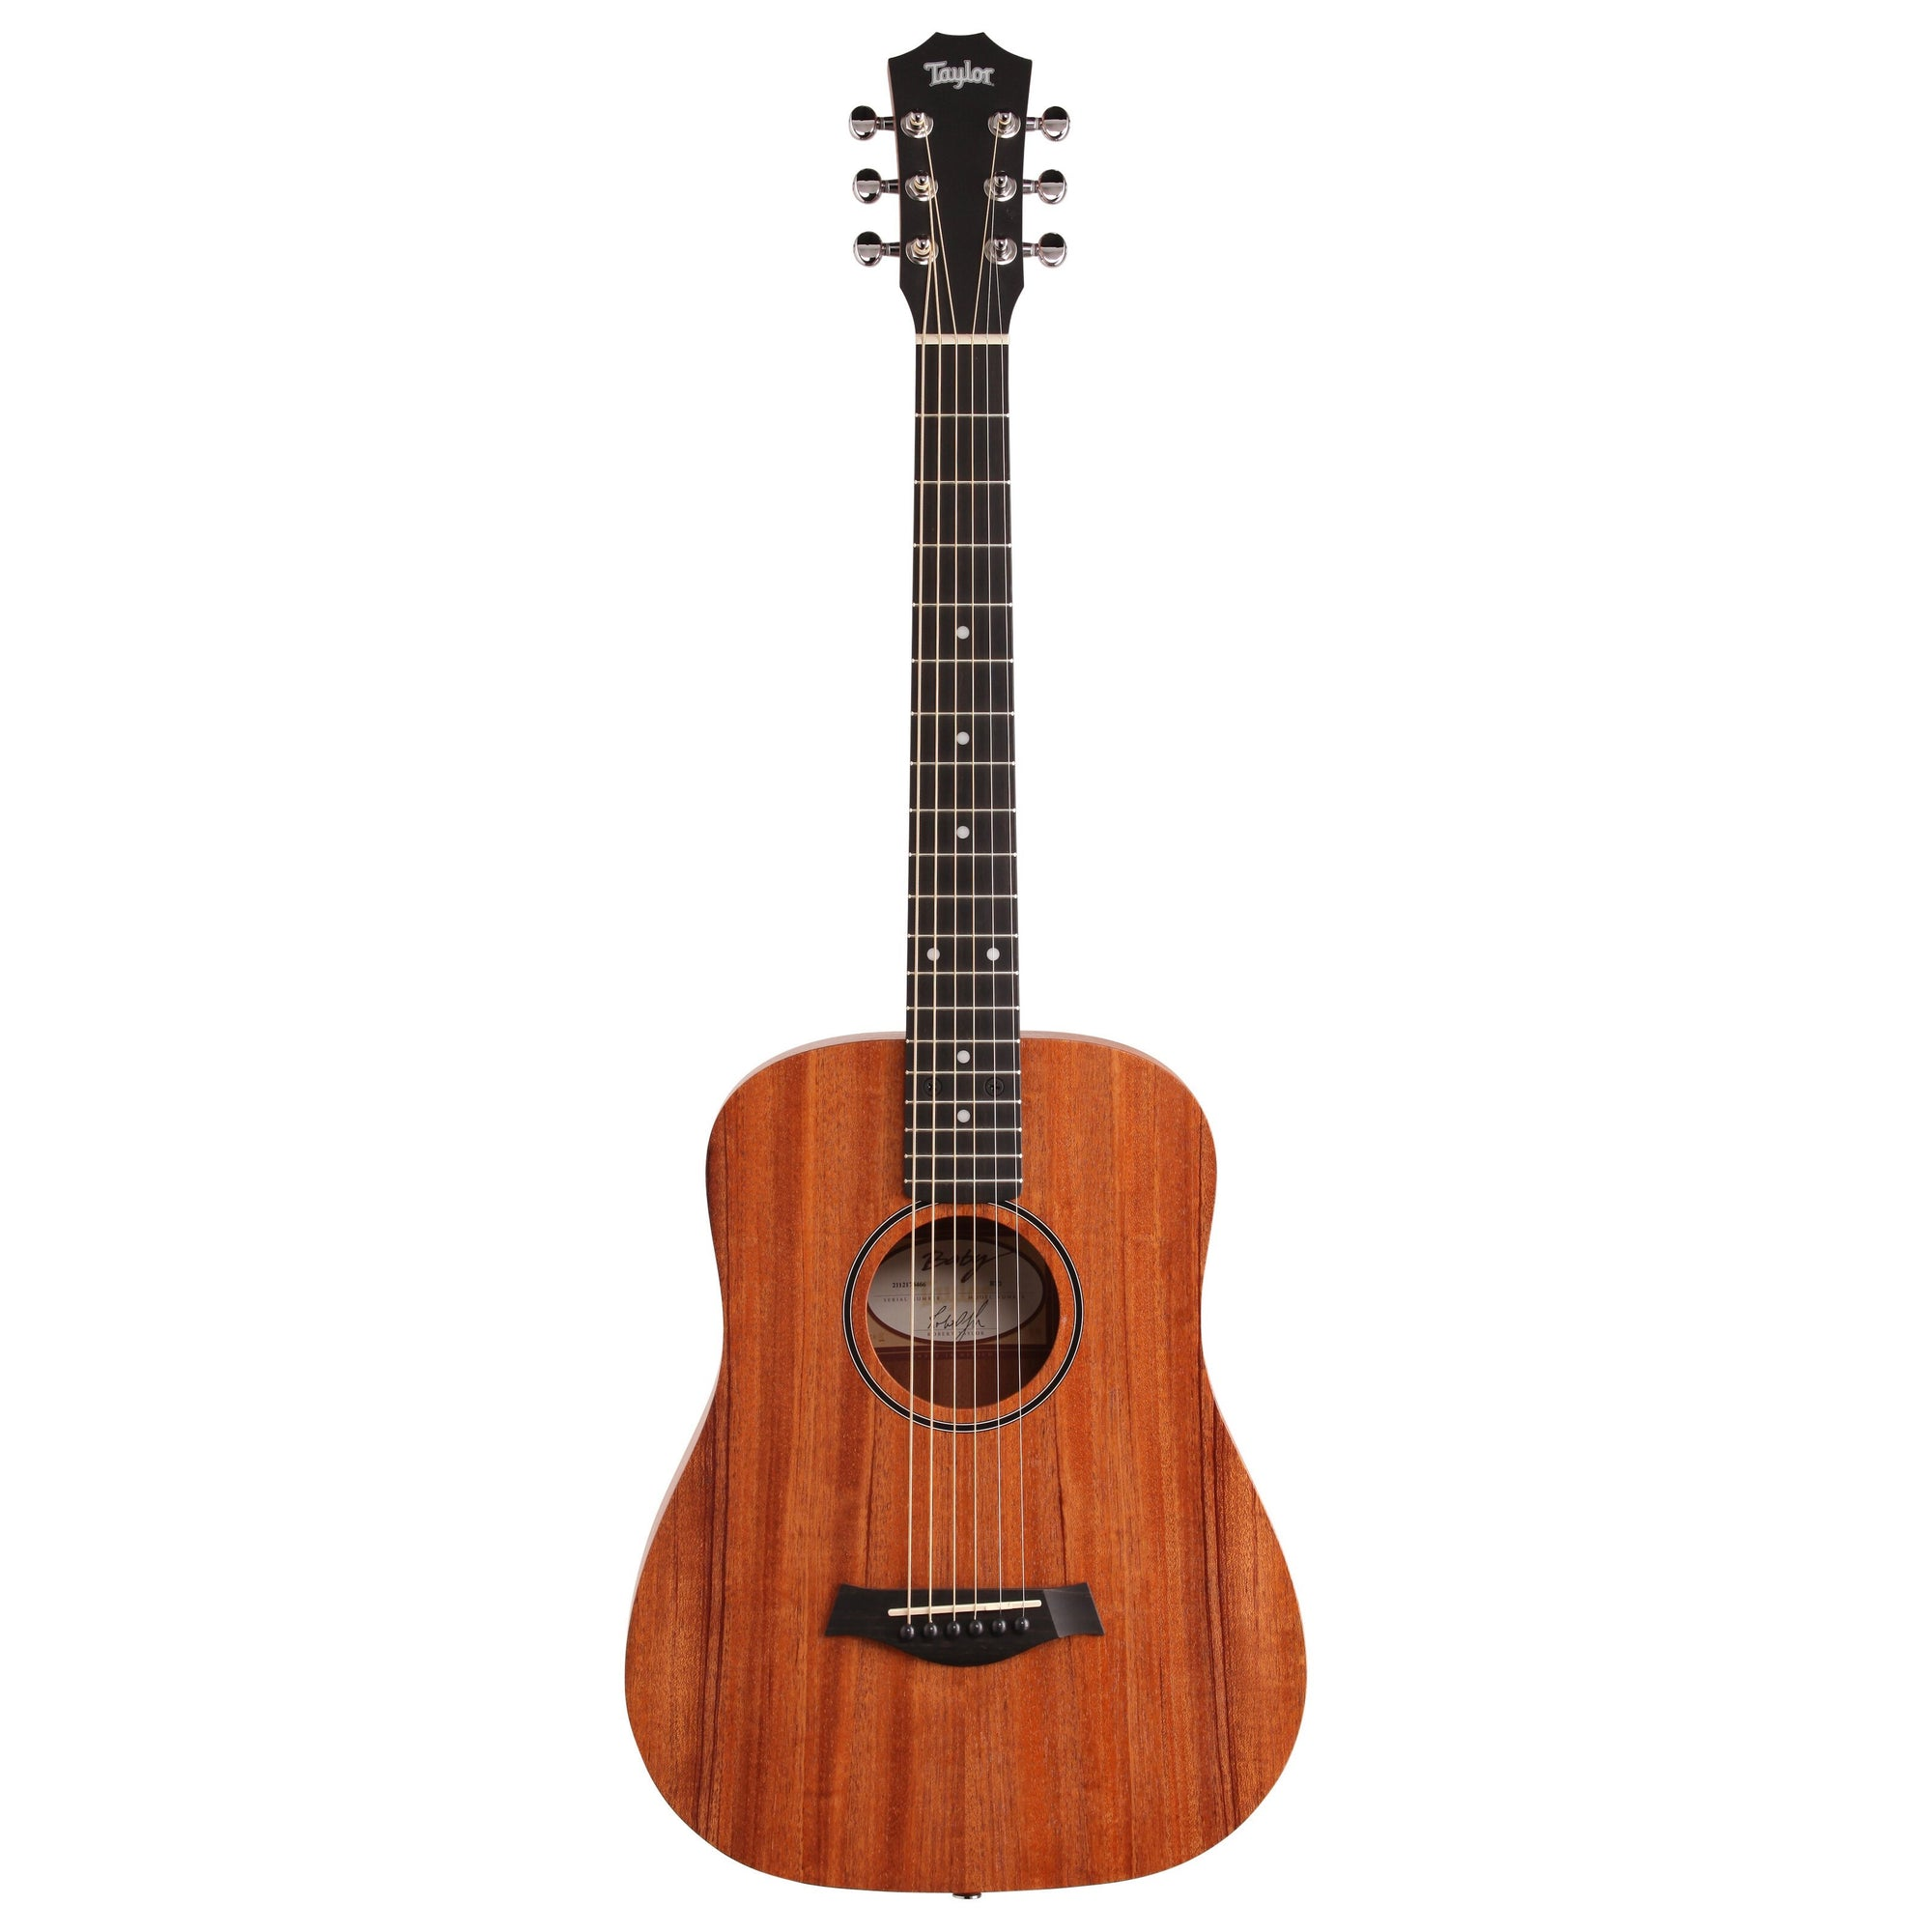 Taylor BT2 Baby Taylor Acoustic Guitar (with Gig Bag)